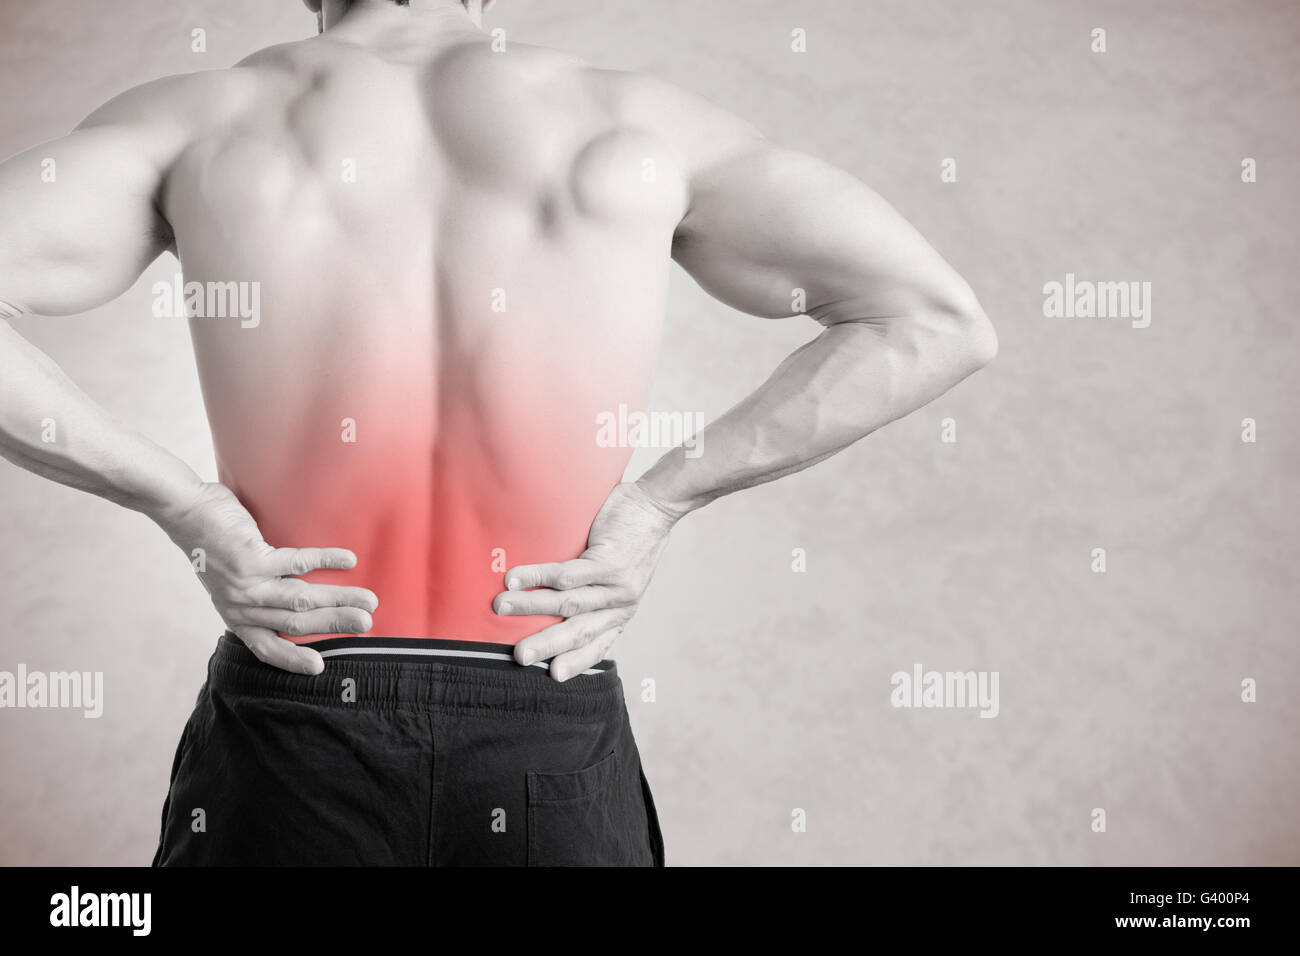 Male athlete with pain in his lower back, isolated in grey. Red spot around painful area. - Stock Image